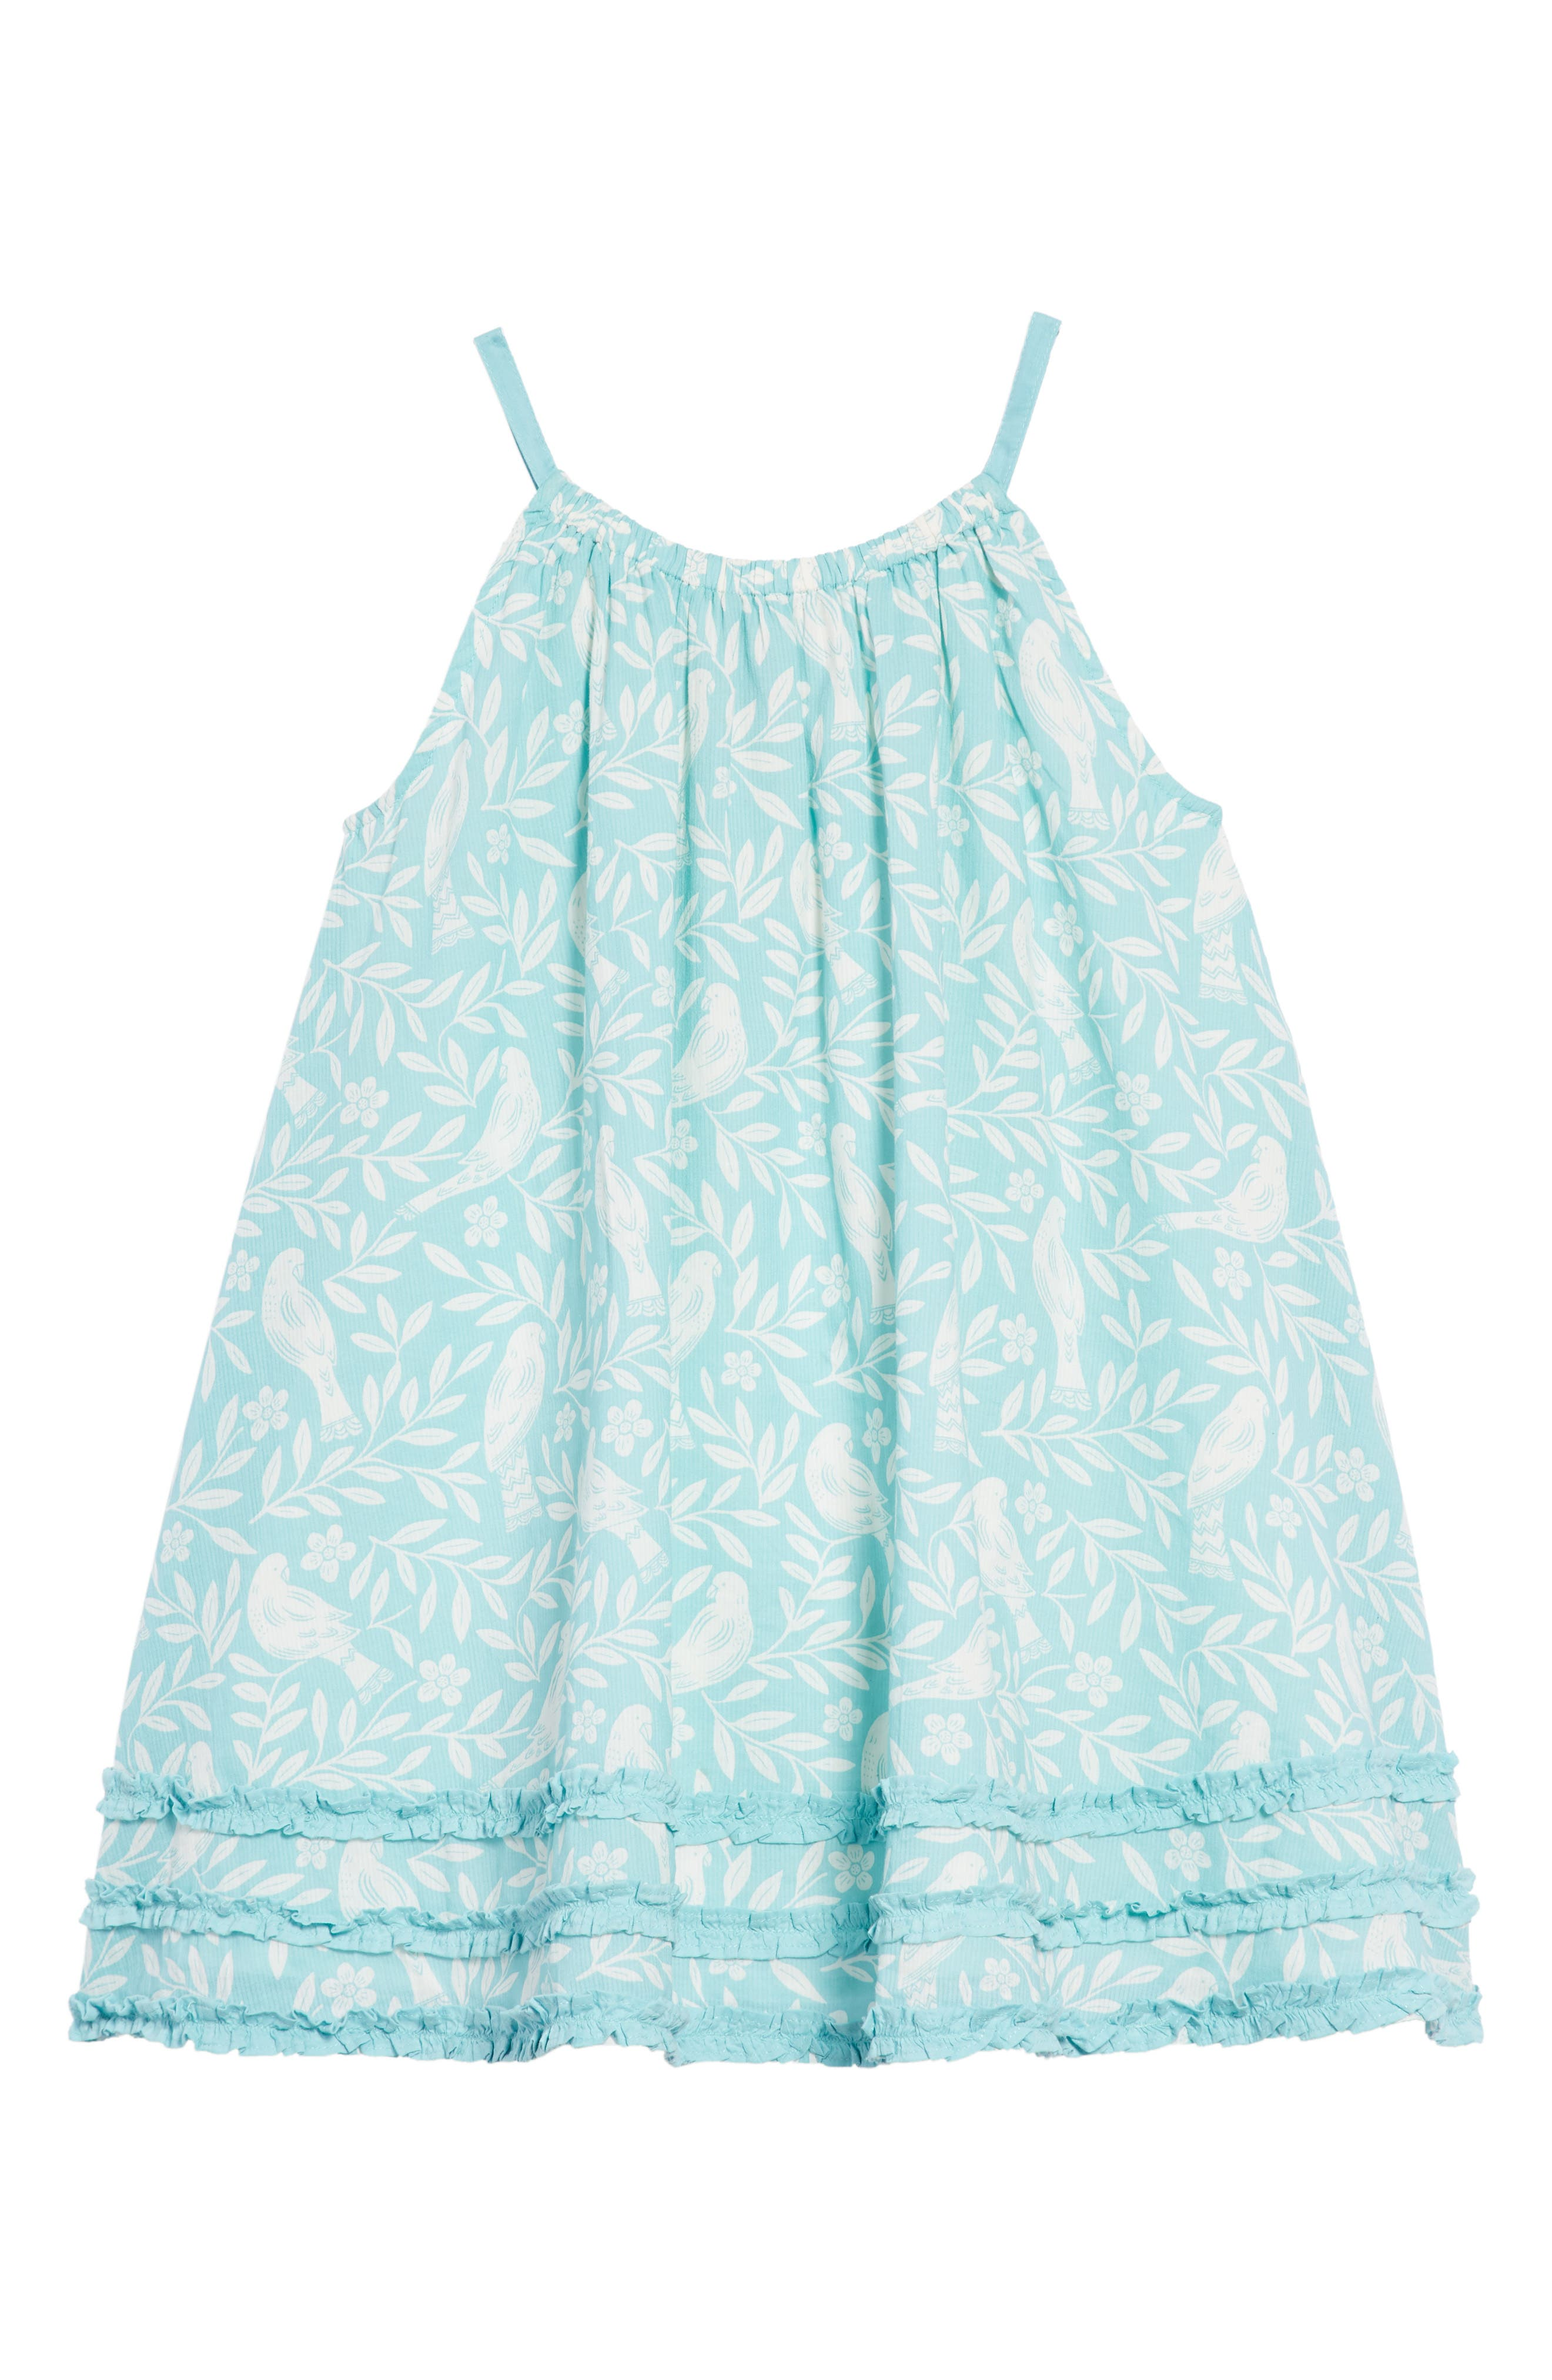 Vacation Woven Dress,                         Main,                         color, 454